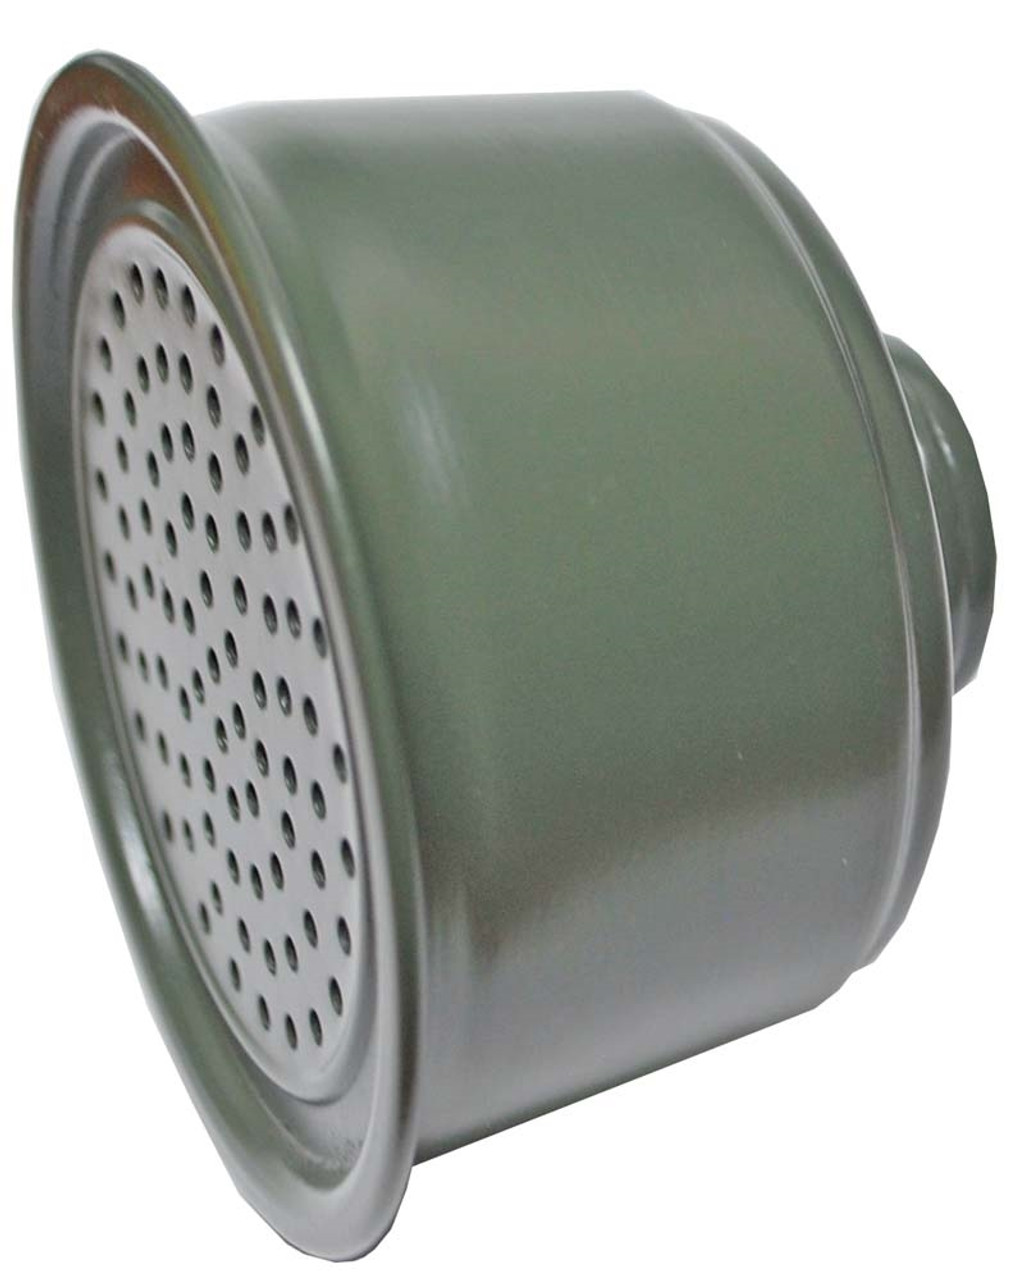 1915 Gas Mask Filter from Hessen Antique